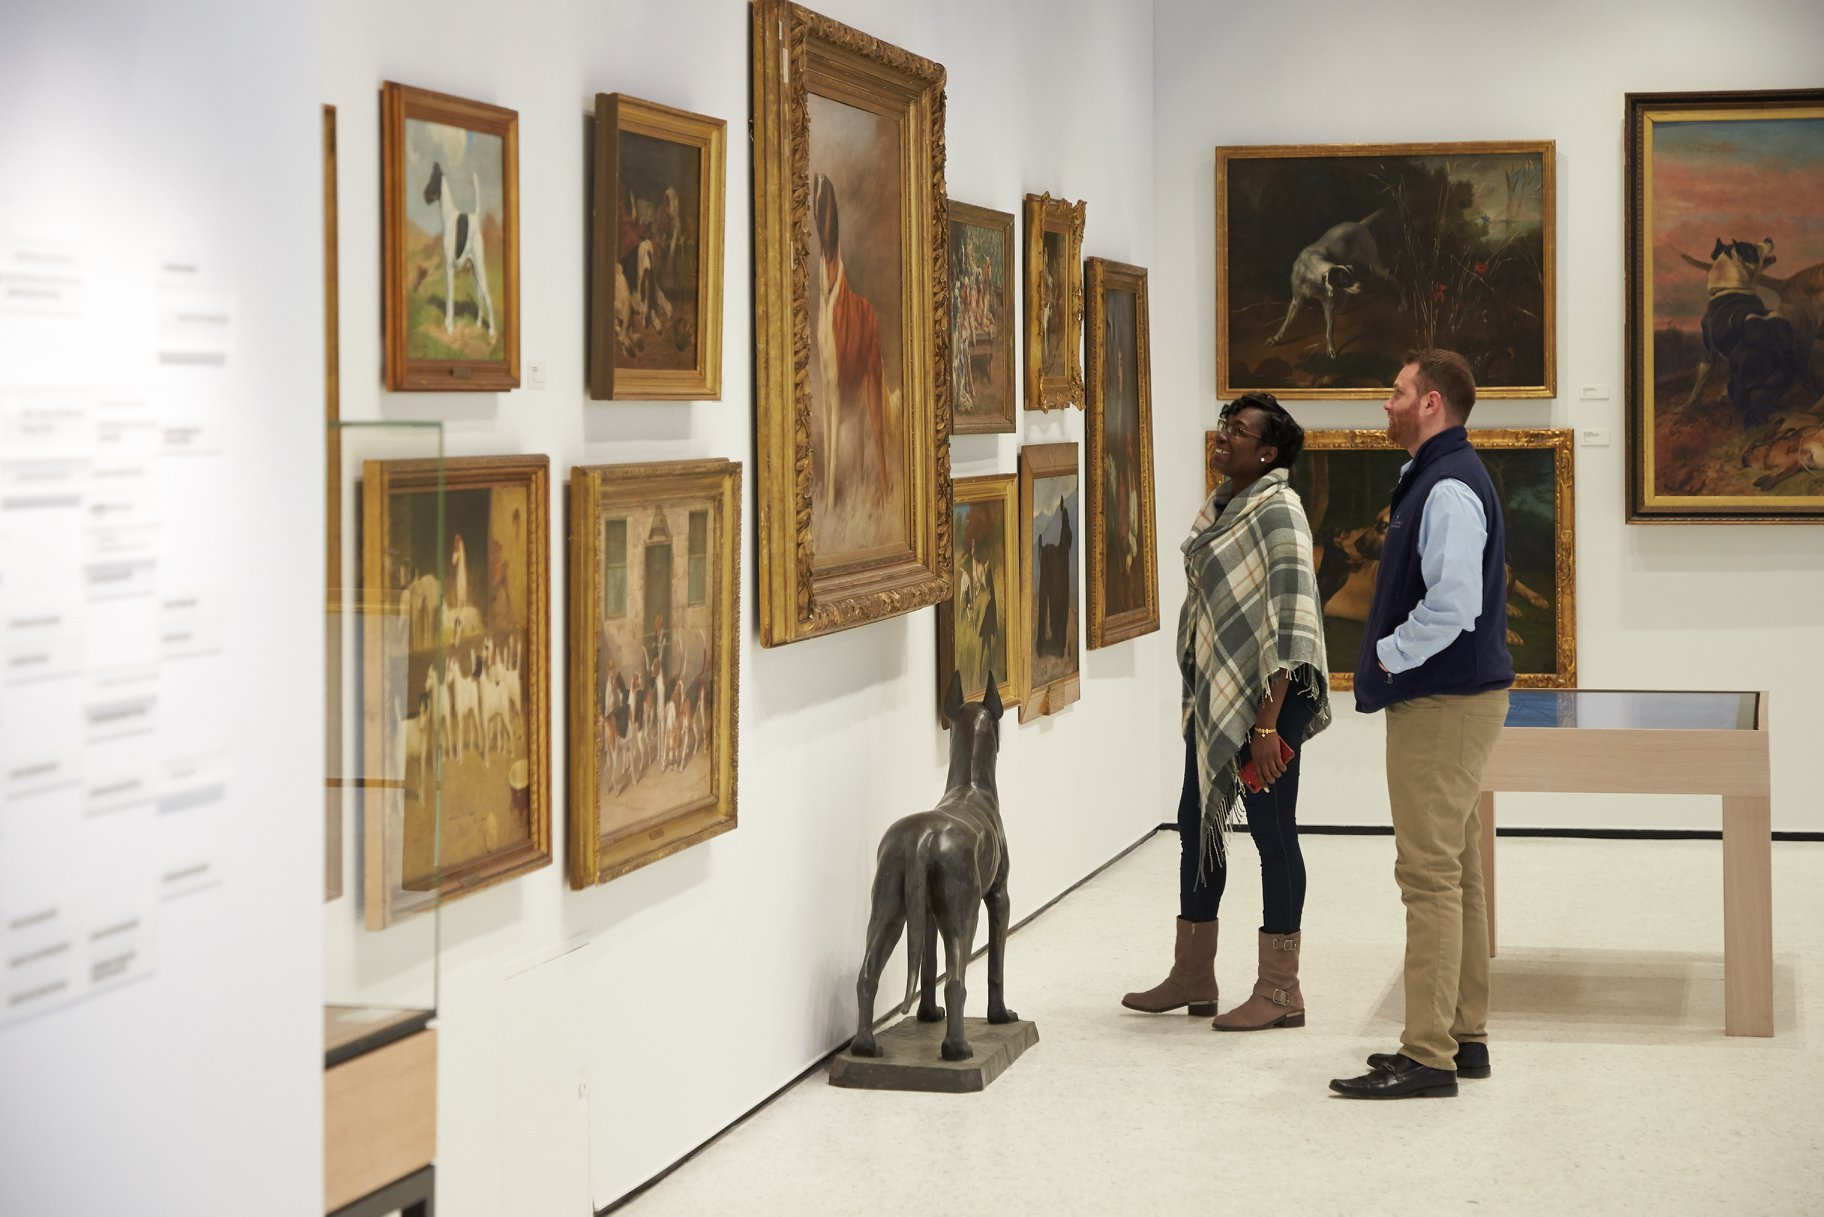 Museum of the Dog opens in New York